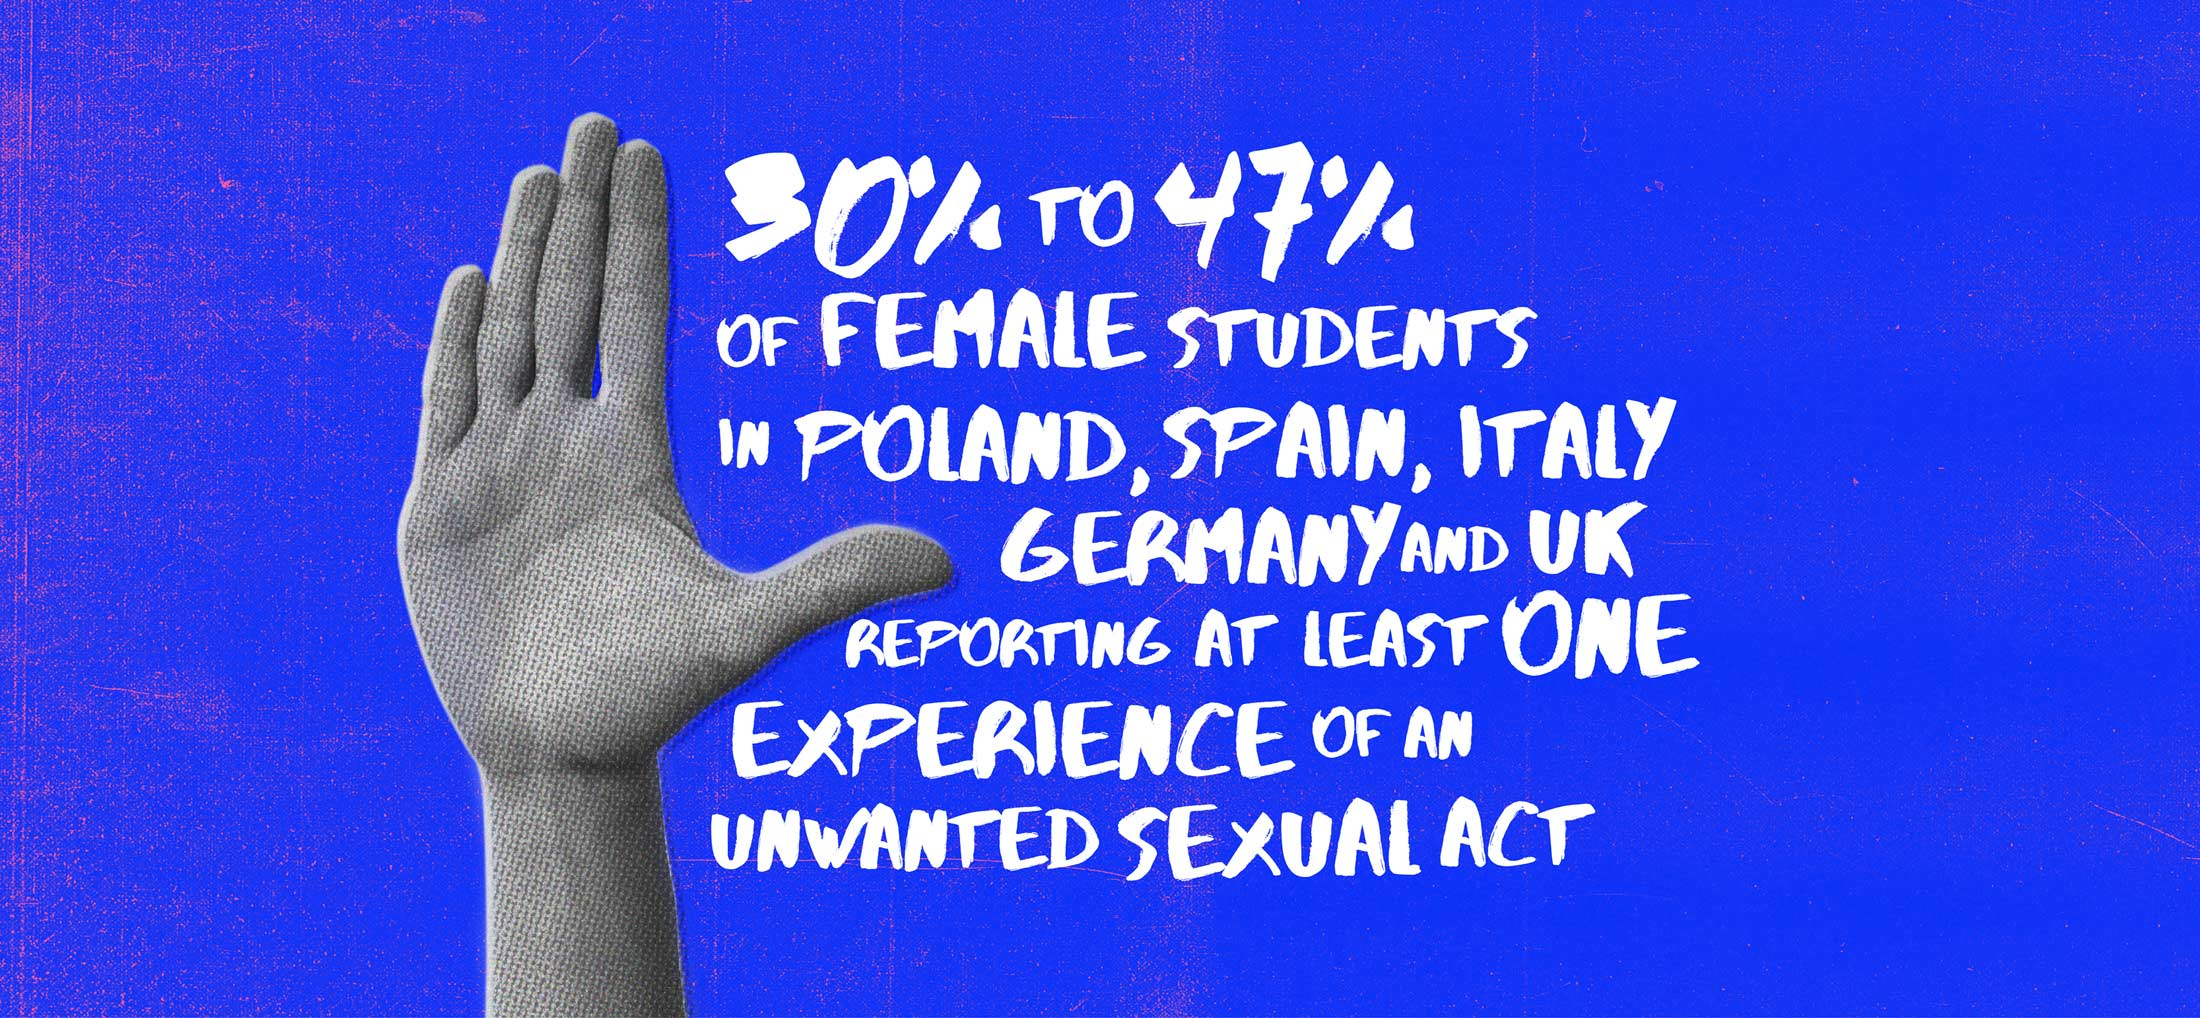 Information on sexual assault with halting hand gesture for It Stops Now European Union Womens Rights Campaign Graphic Design and photography